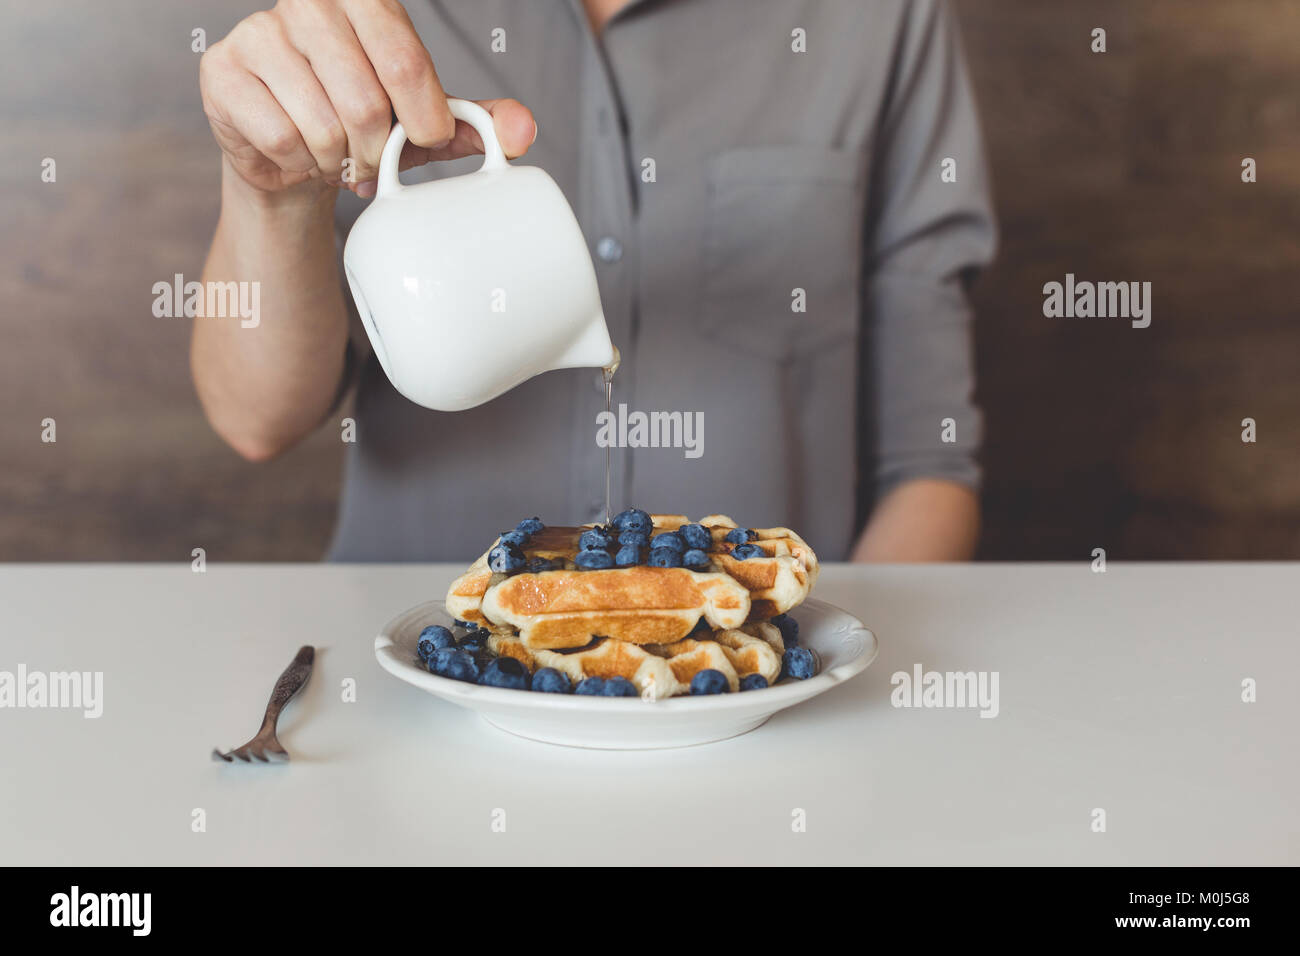 cropped shot of woman pouring sweet syrup on tasty waffles - Stock Image